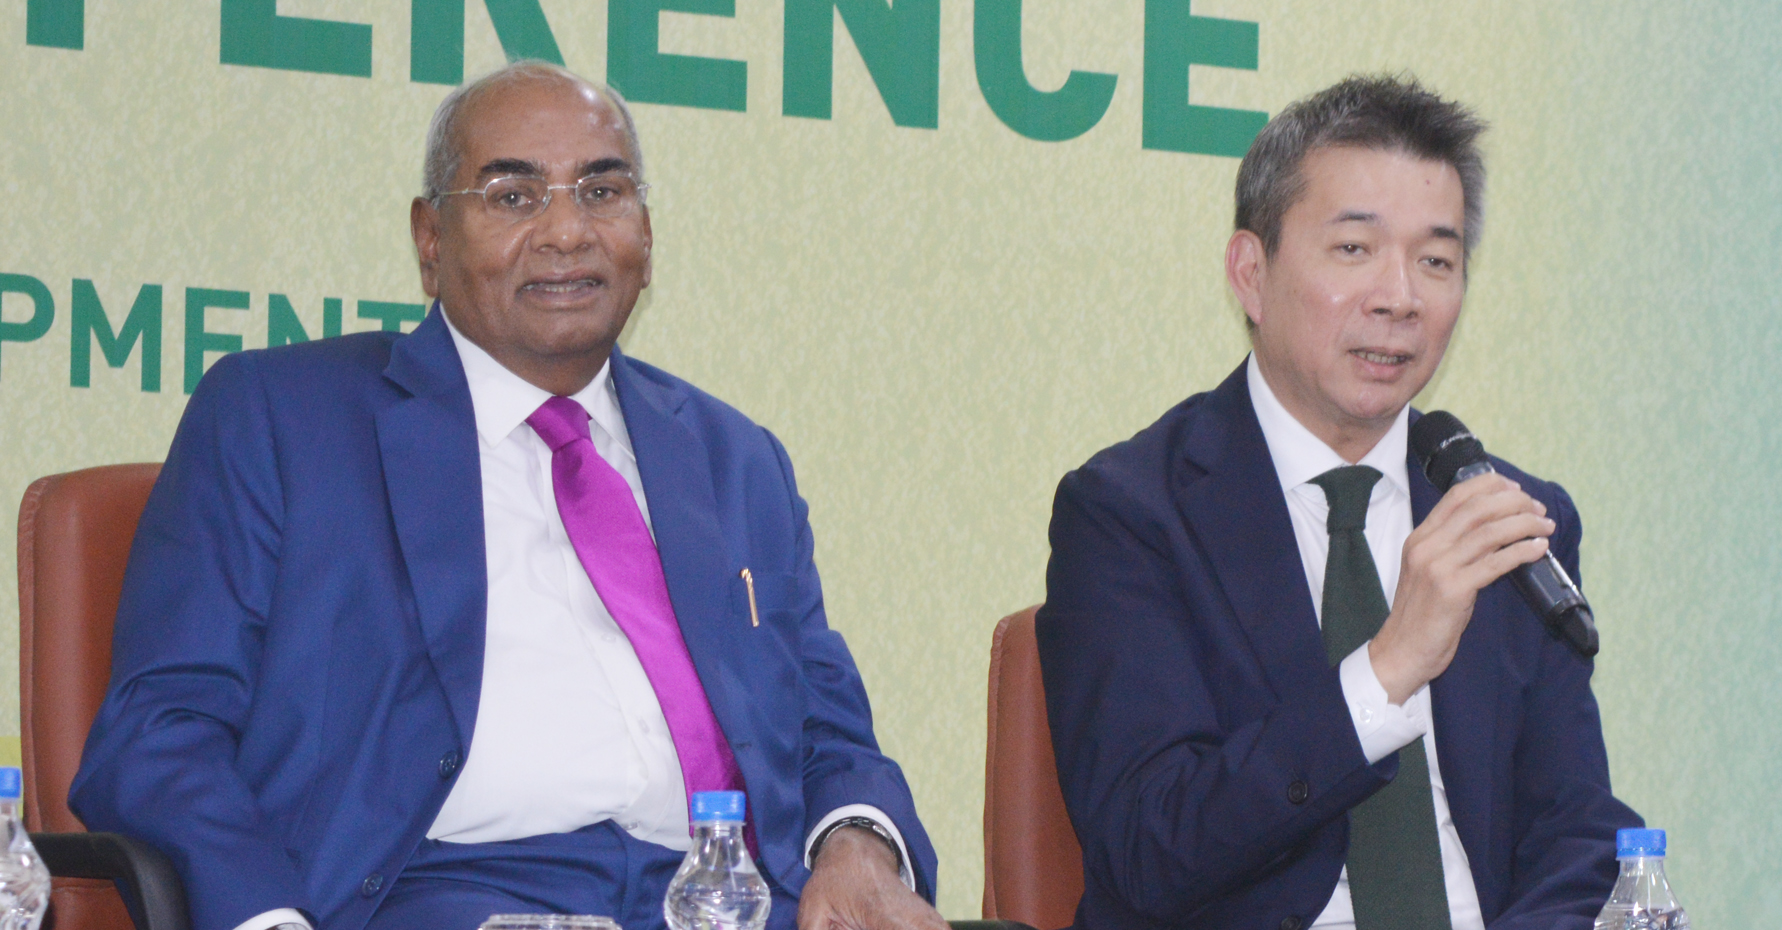 We share DNA with IFFCO: Japanese partner